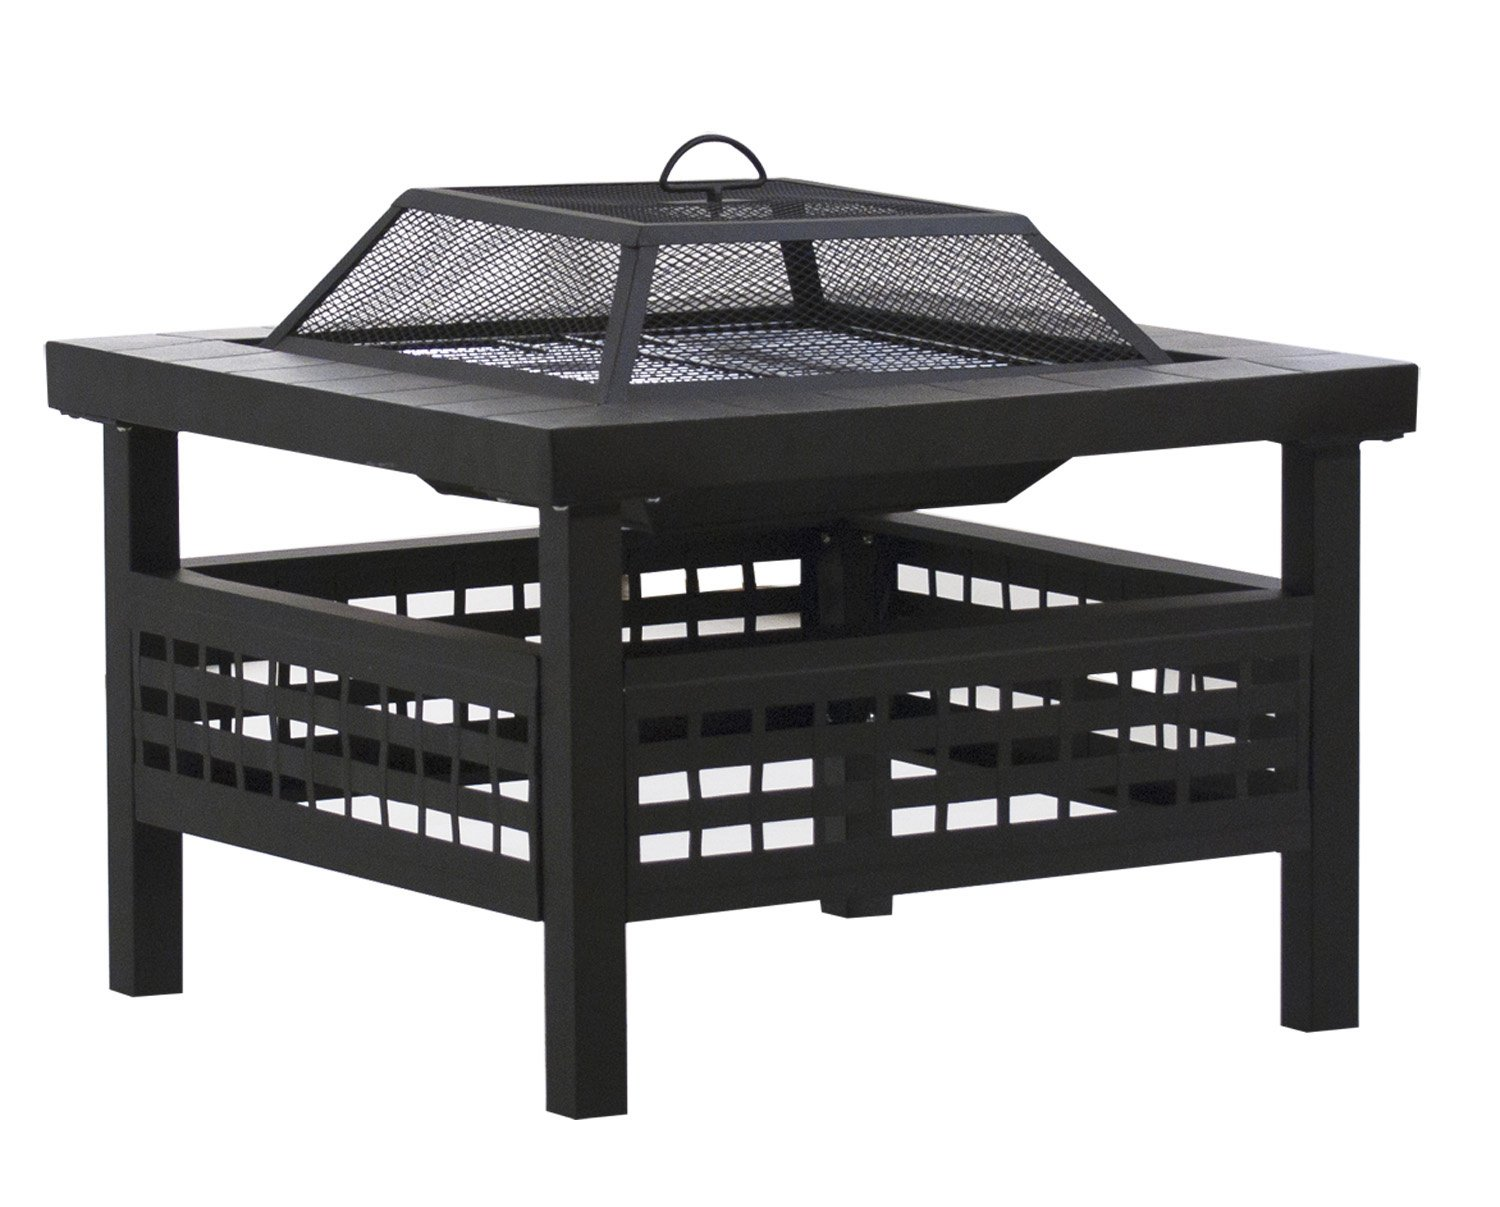 Deckmate 30605 Sonoma Outdoor Steel Fire Pit